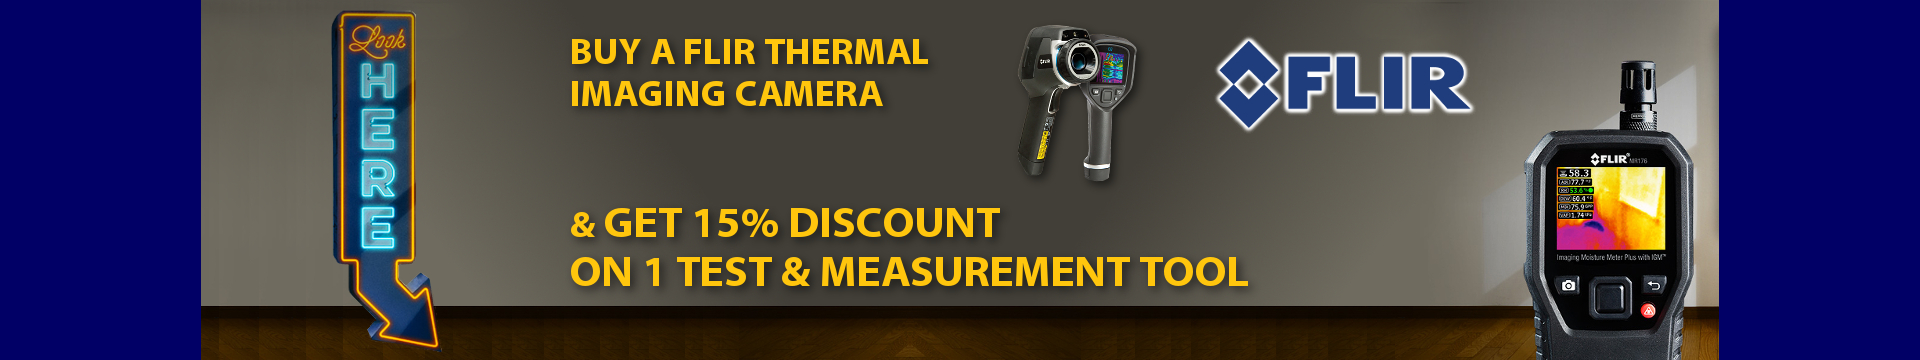 Flir Test Tools With Thermal